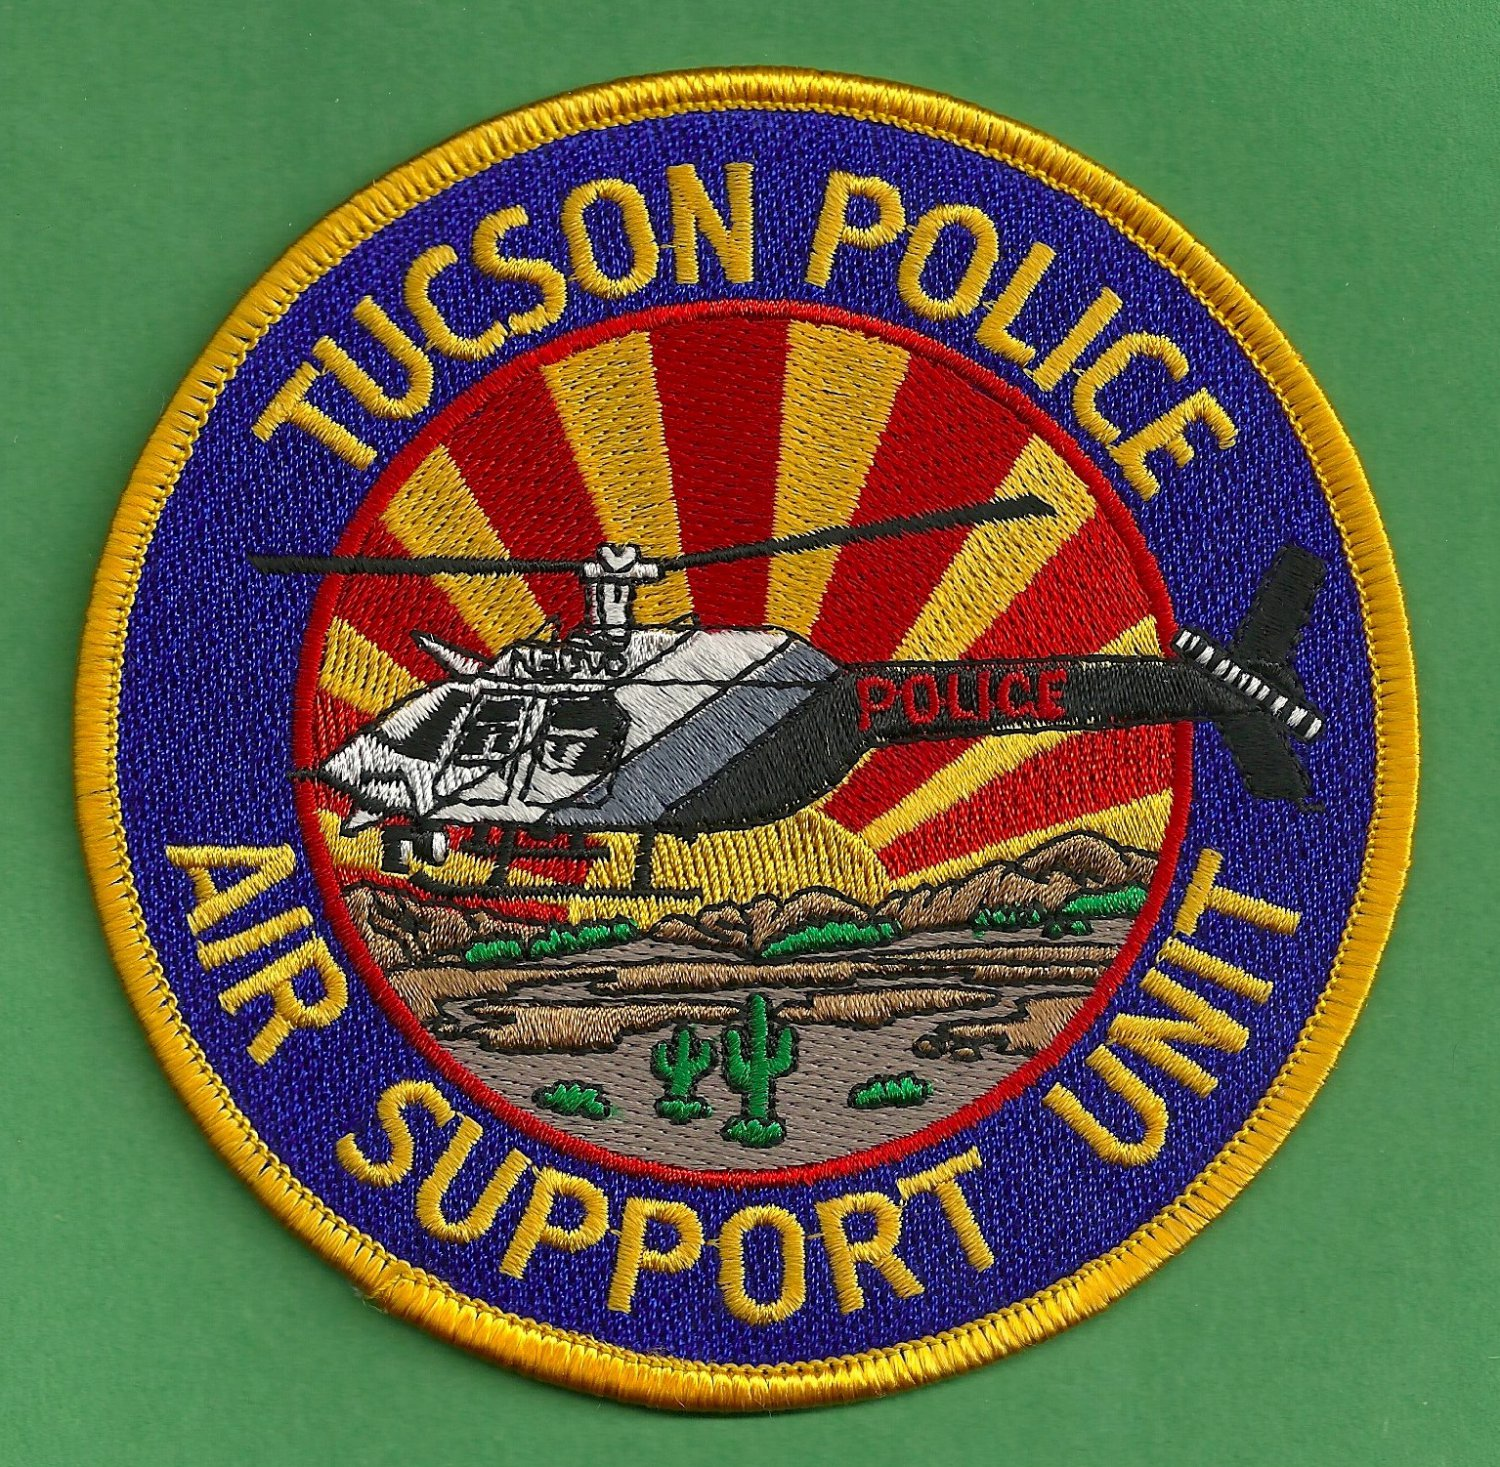 Tucson Arizona Police Helicopter Air Unit Patch